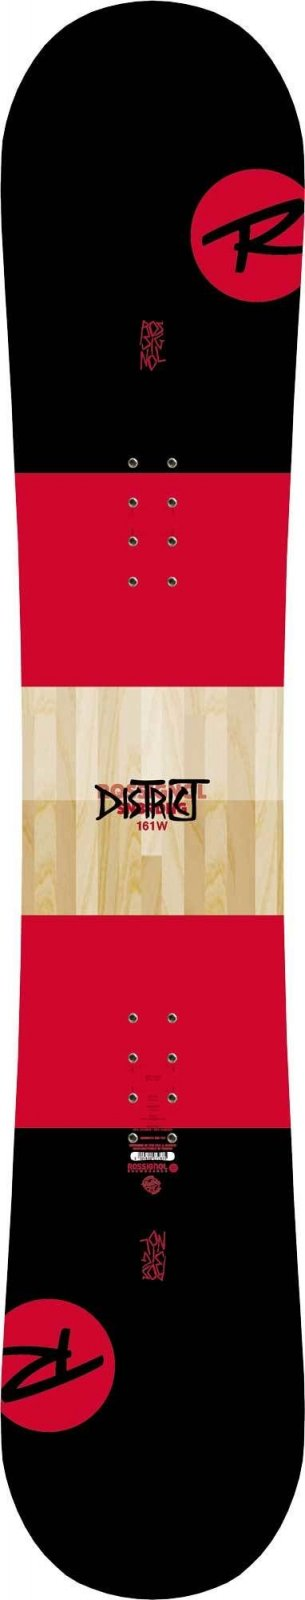 DISTRICT BK/RD